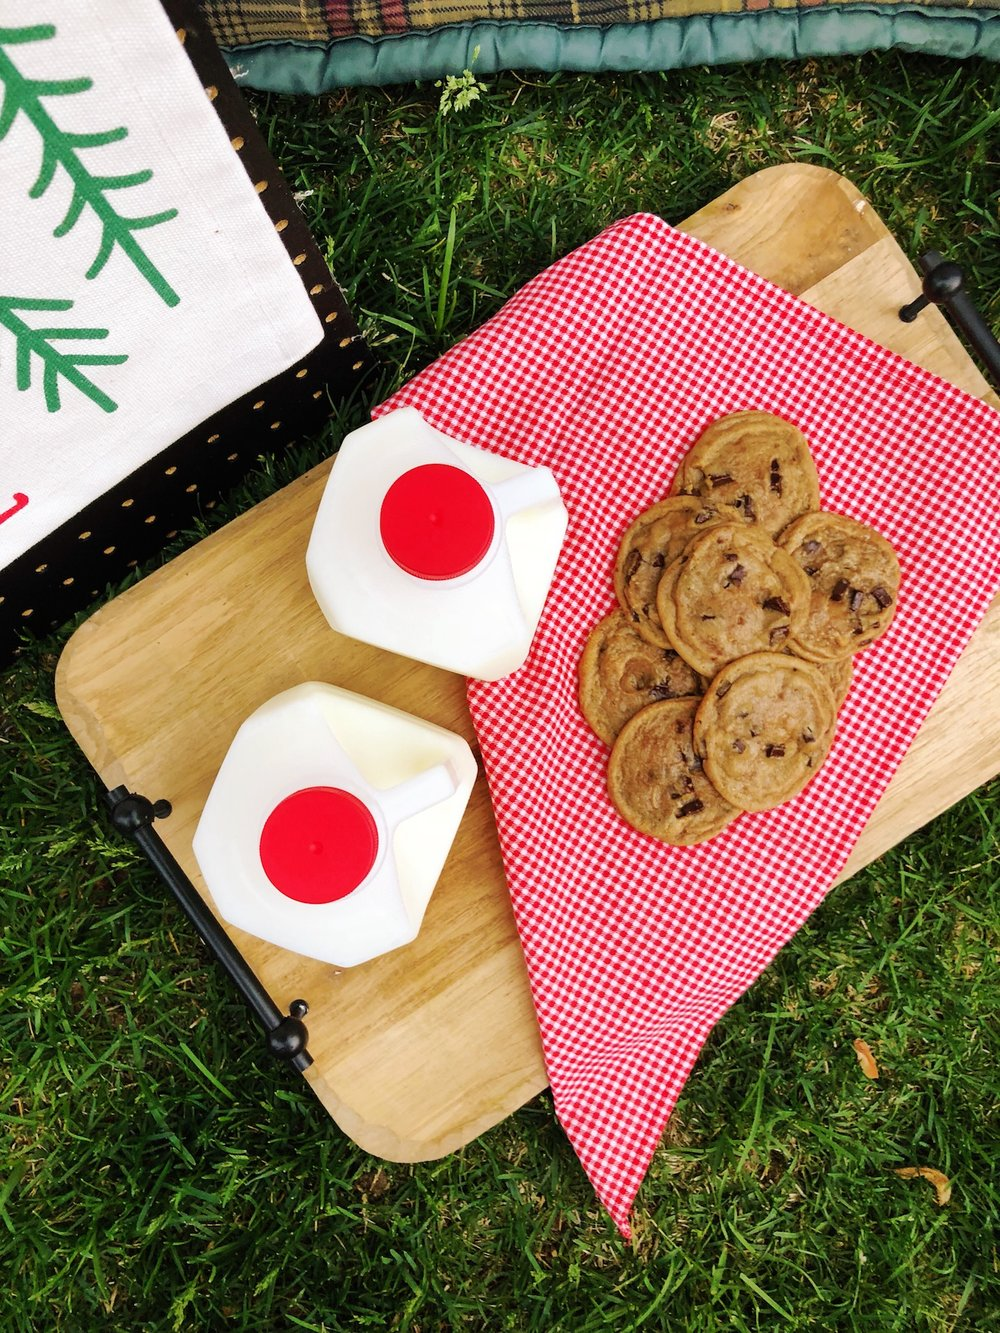 Outdoor Camping Tent Party_Milk Cookies_Picnic_Design Organize Party.JPG